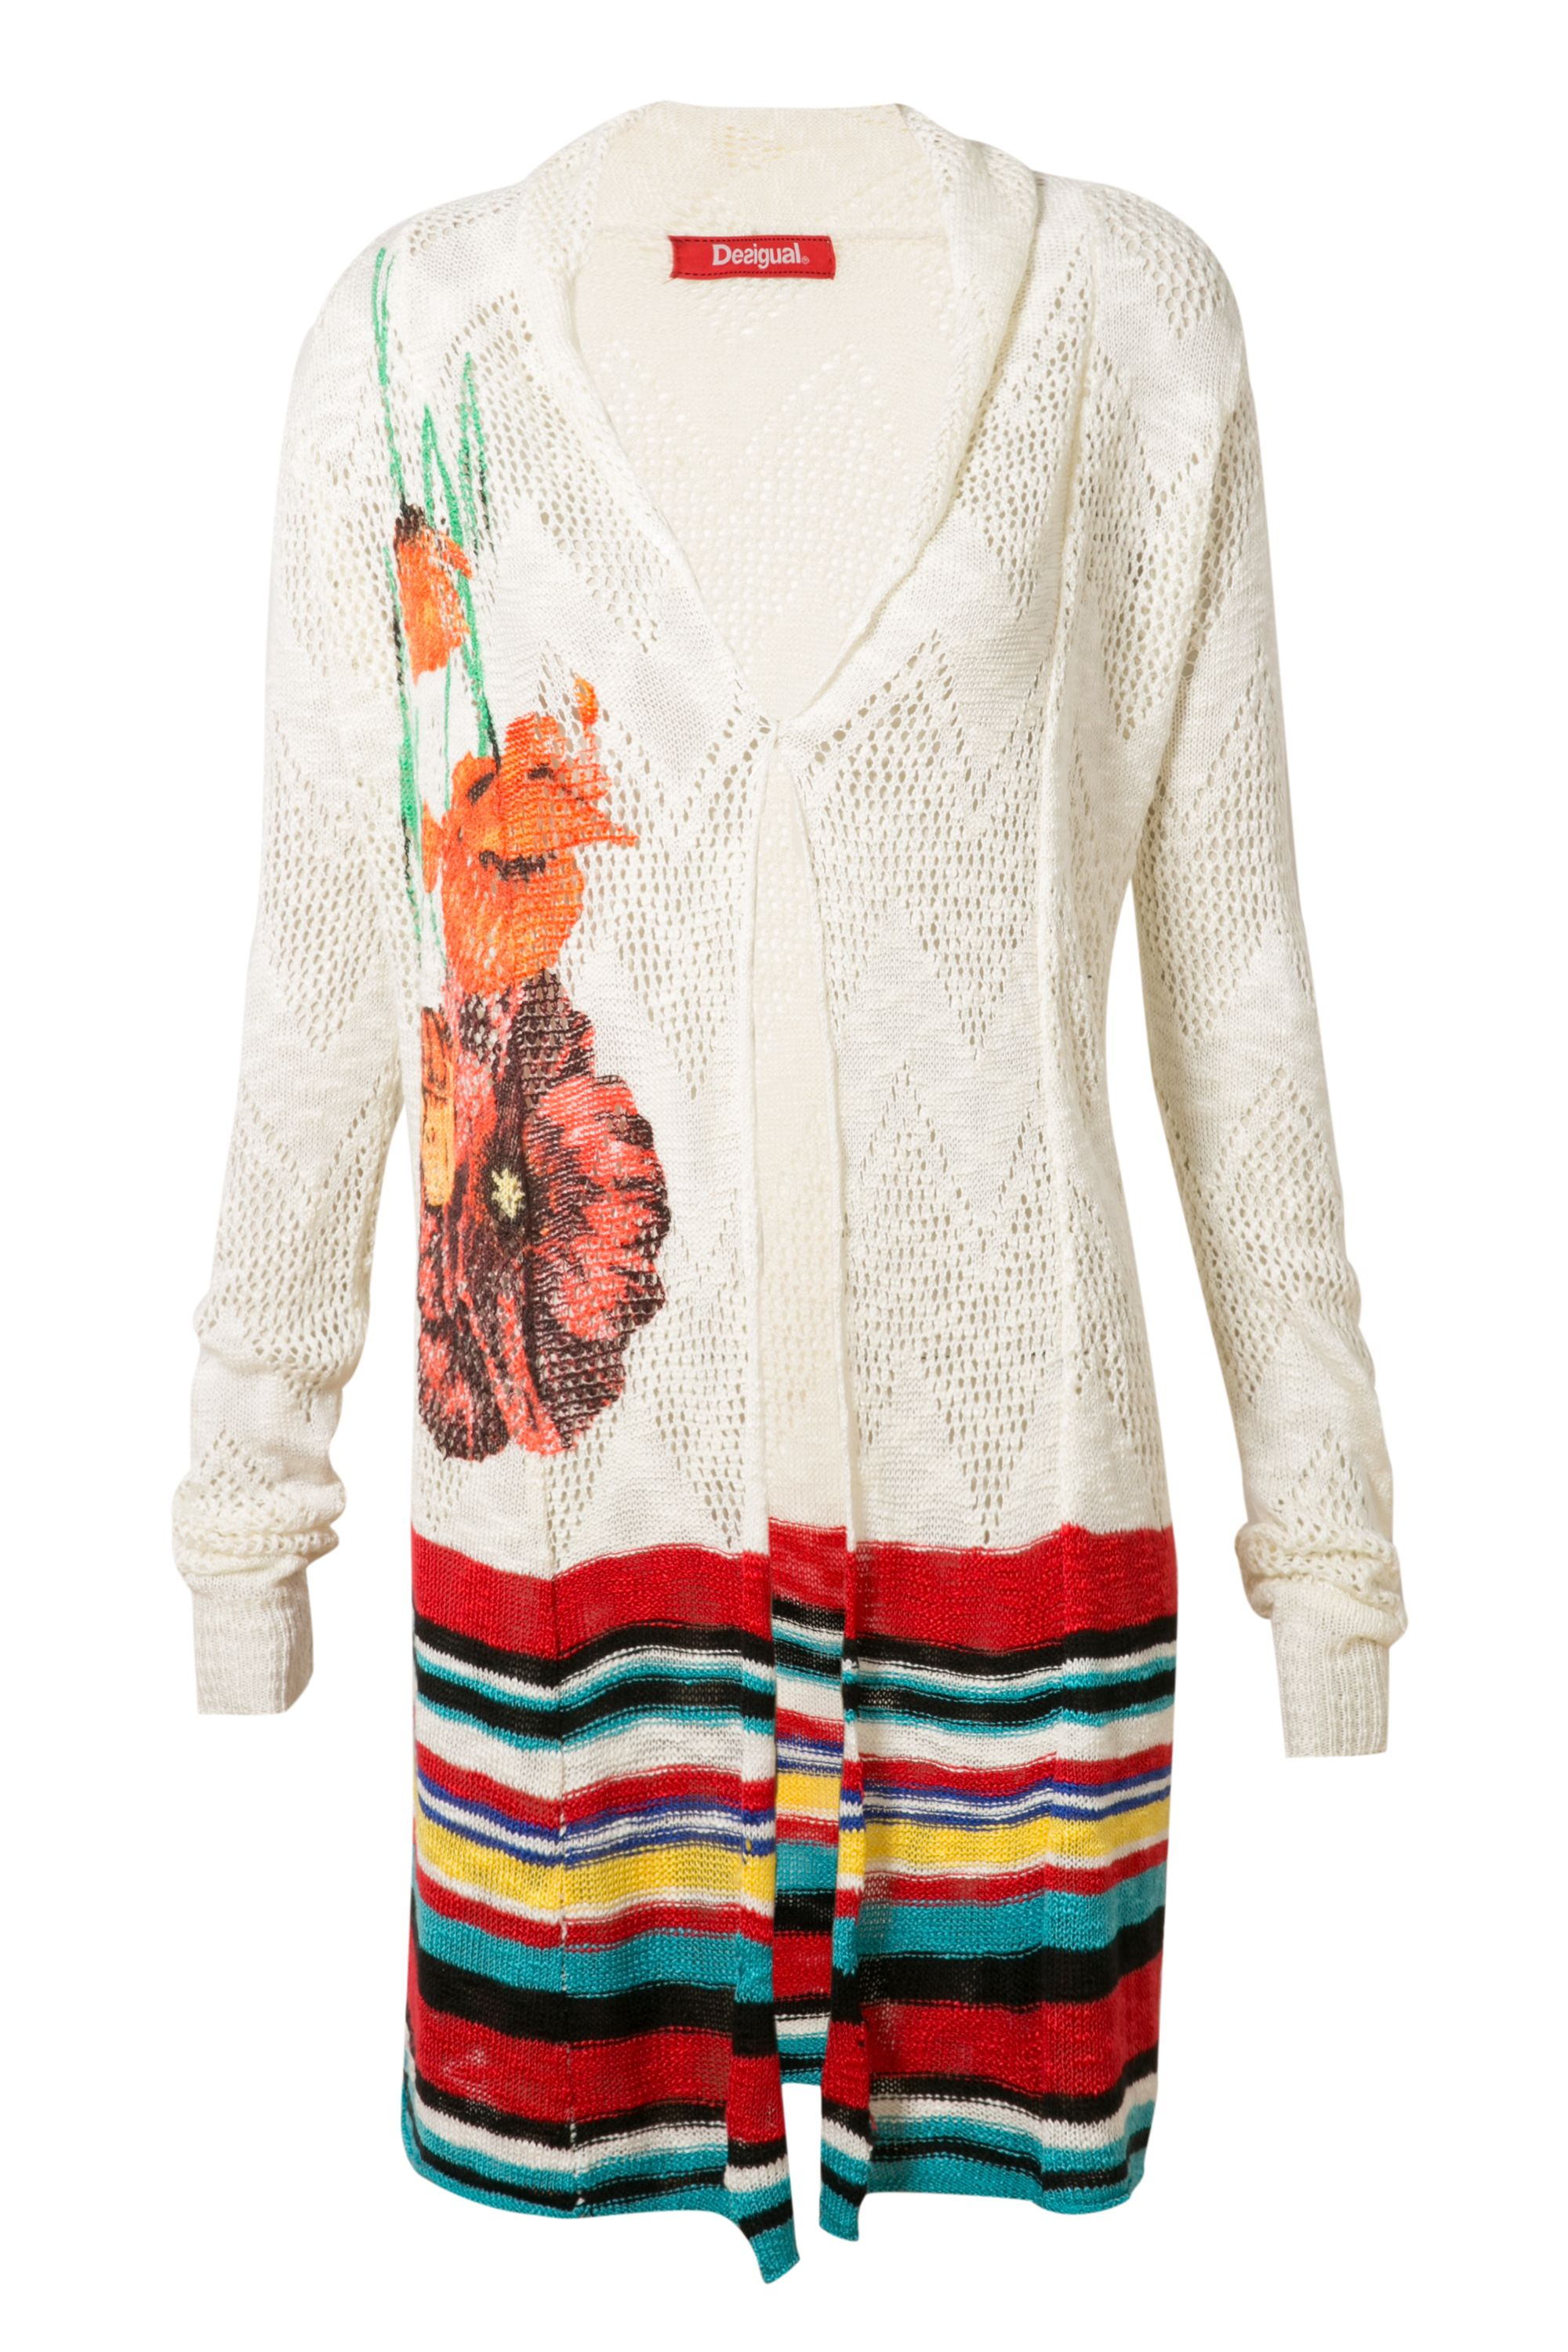 Desigual Sweater Margarita, Brown